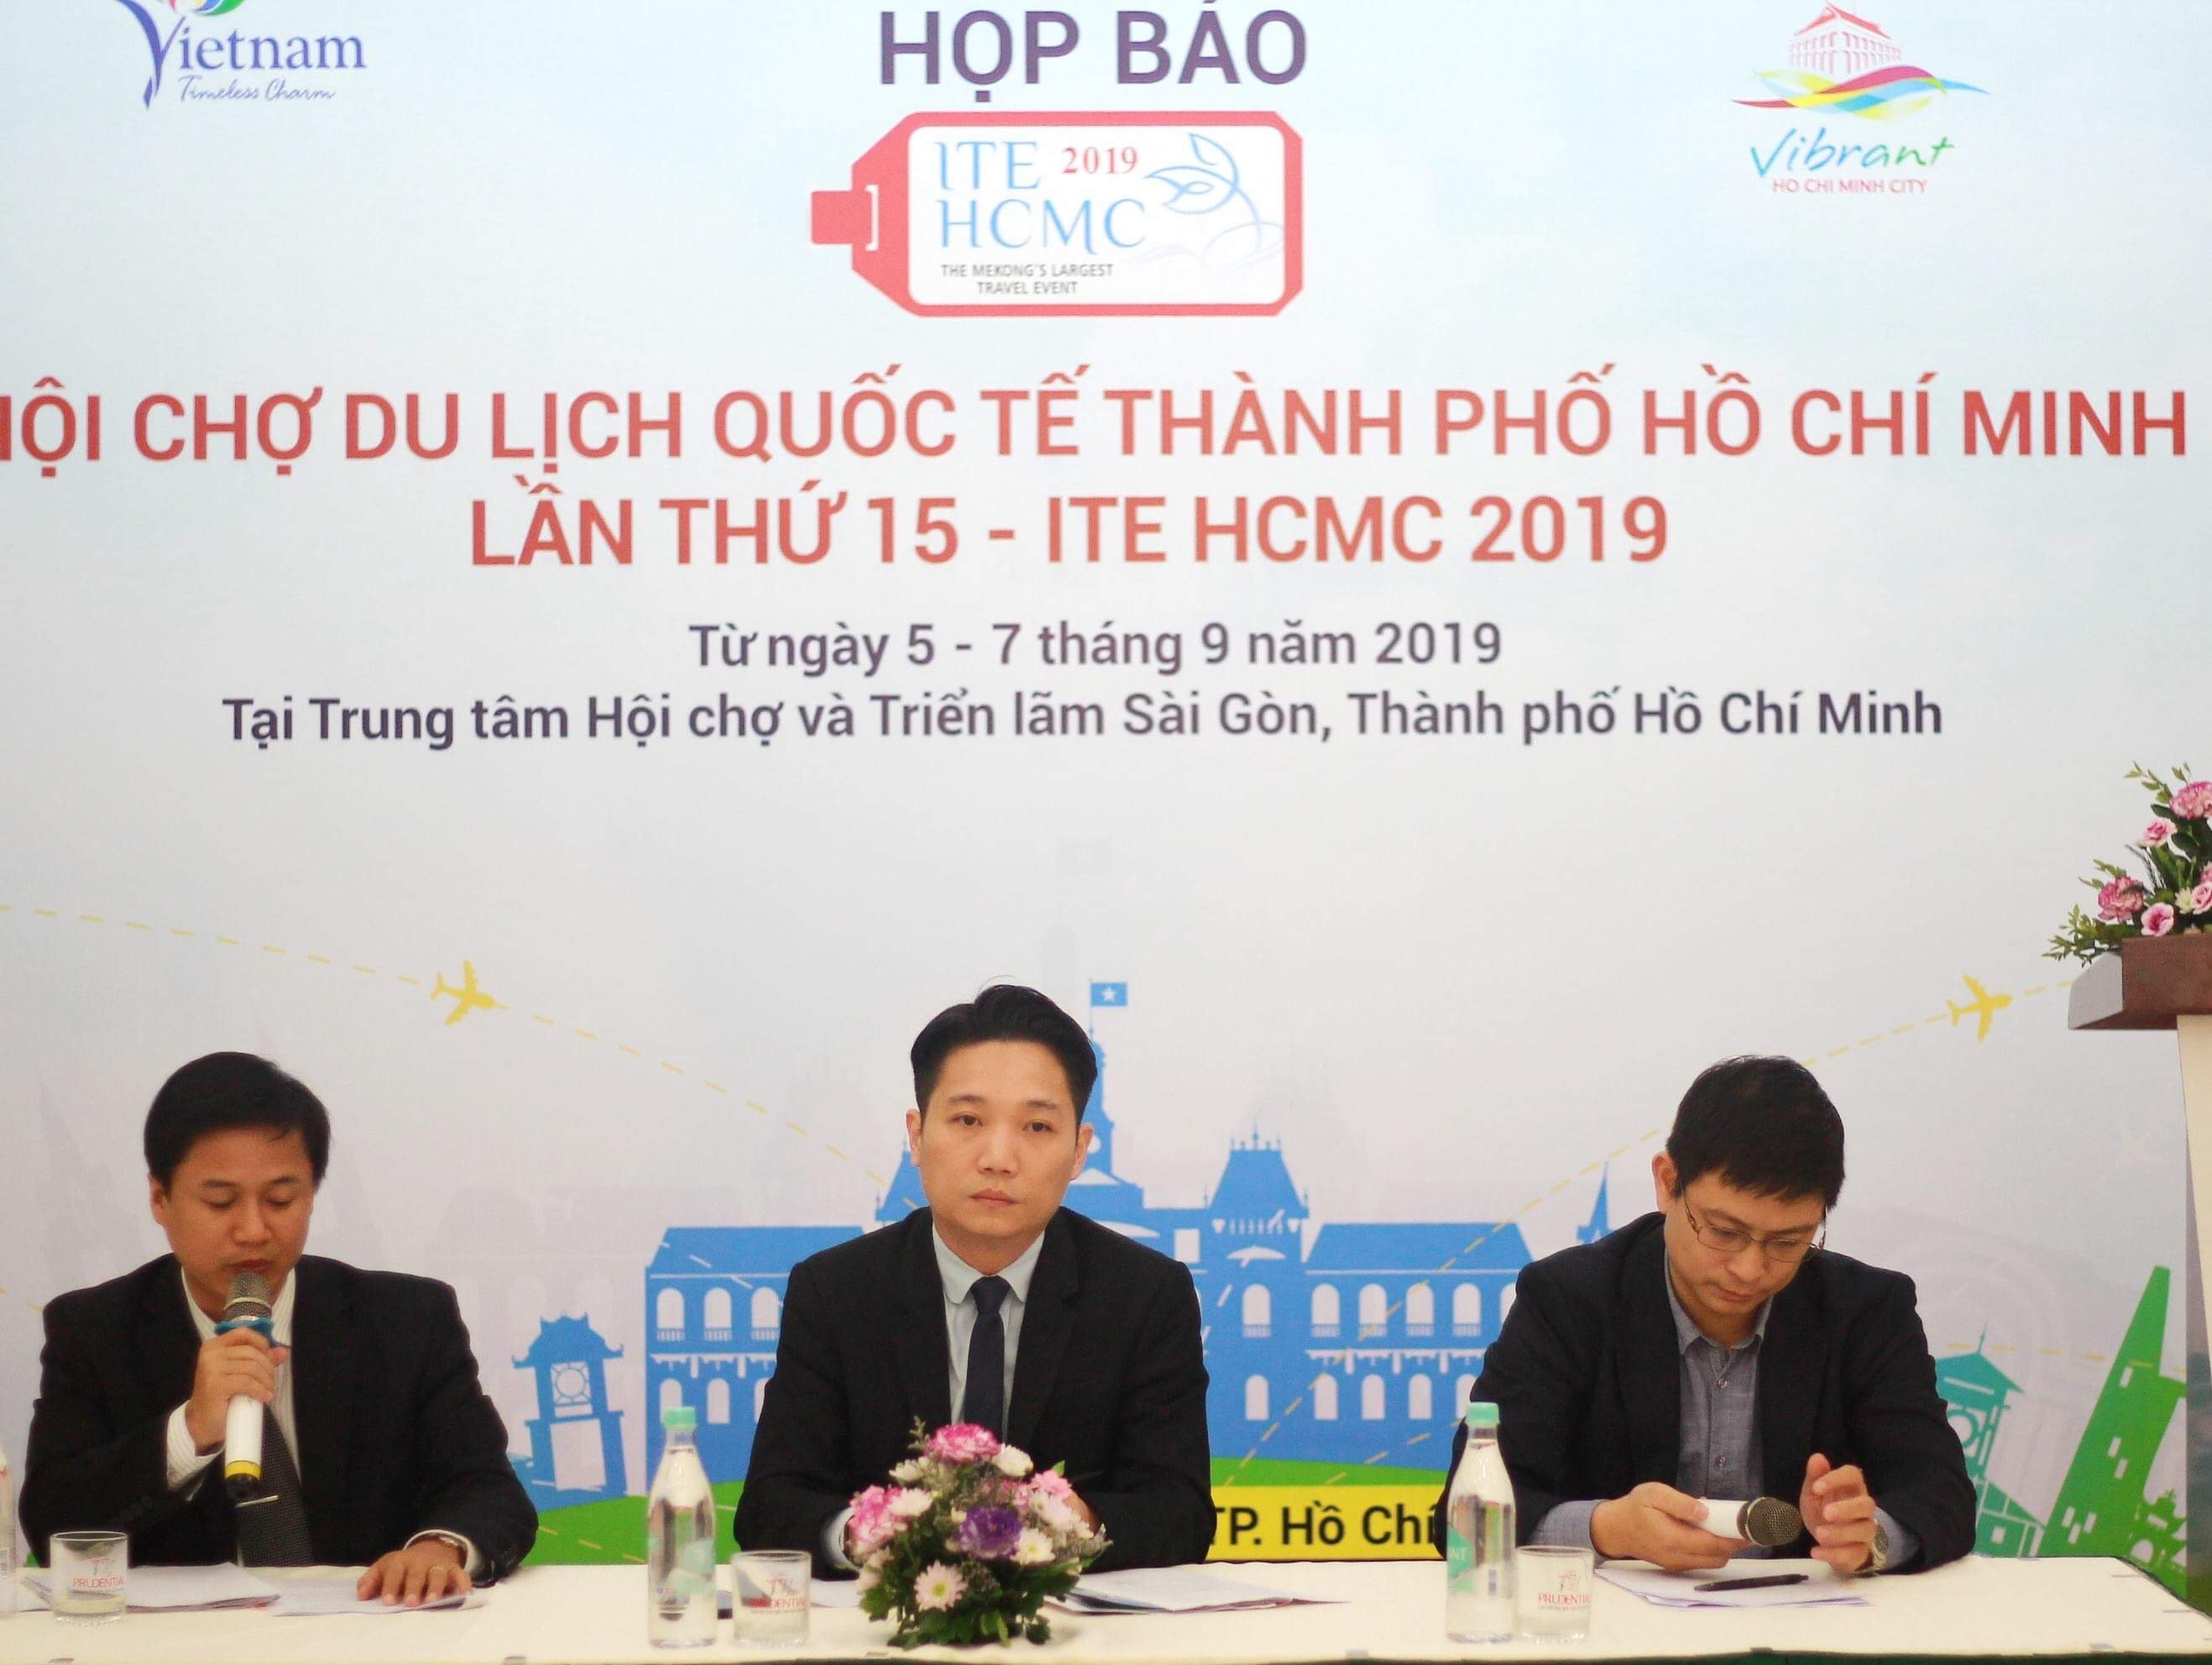 ITE HCMC 2019 to attract over 350 exhibitors